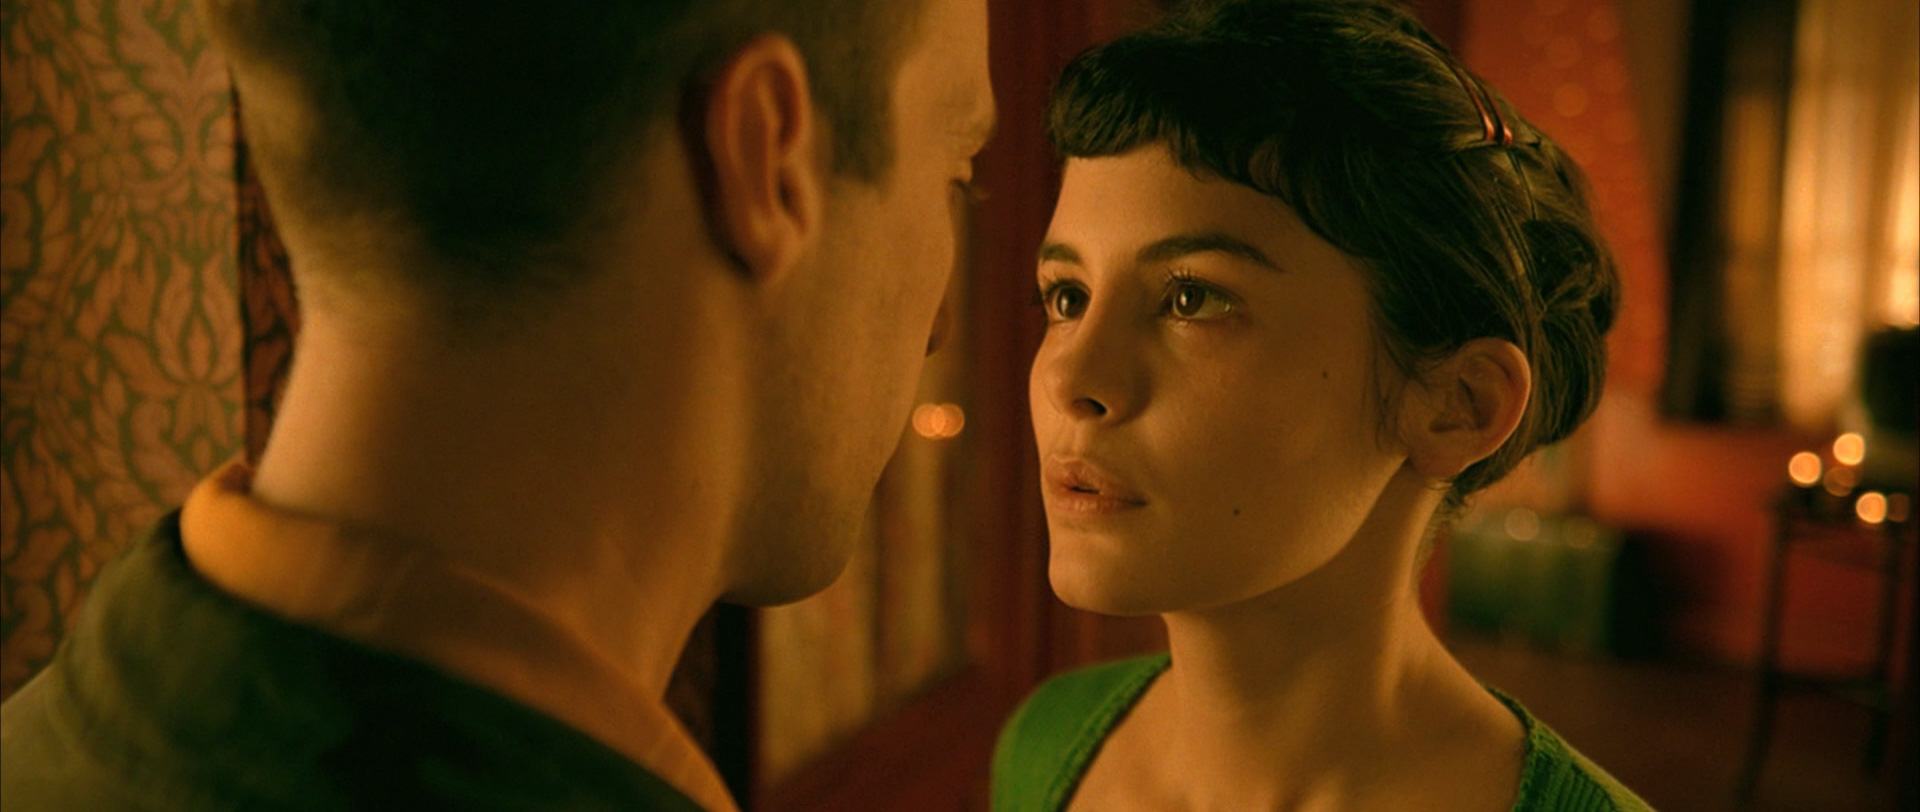 essay questions on amelie Free essay: jean-pierre jeunet's film amelie imagination is an intrinsic part of the human experience it has the power to mold reality by defining the.